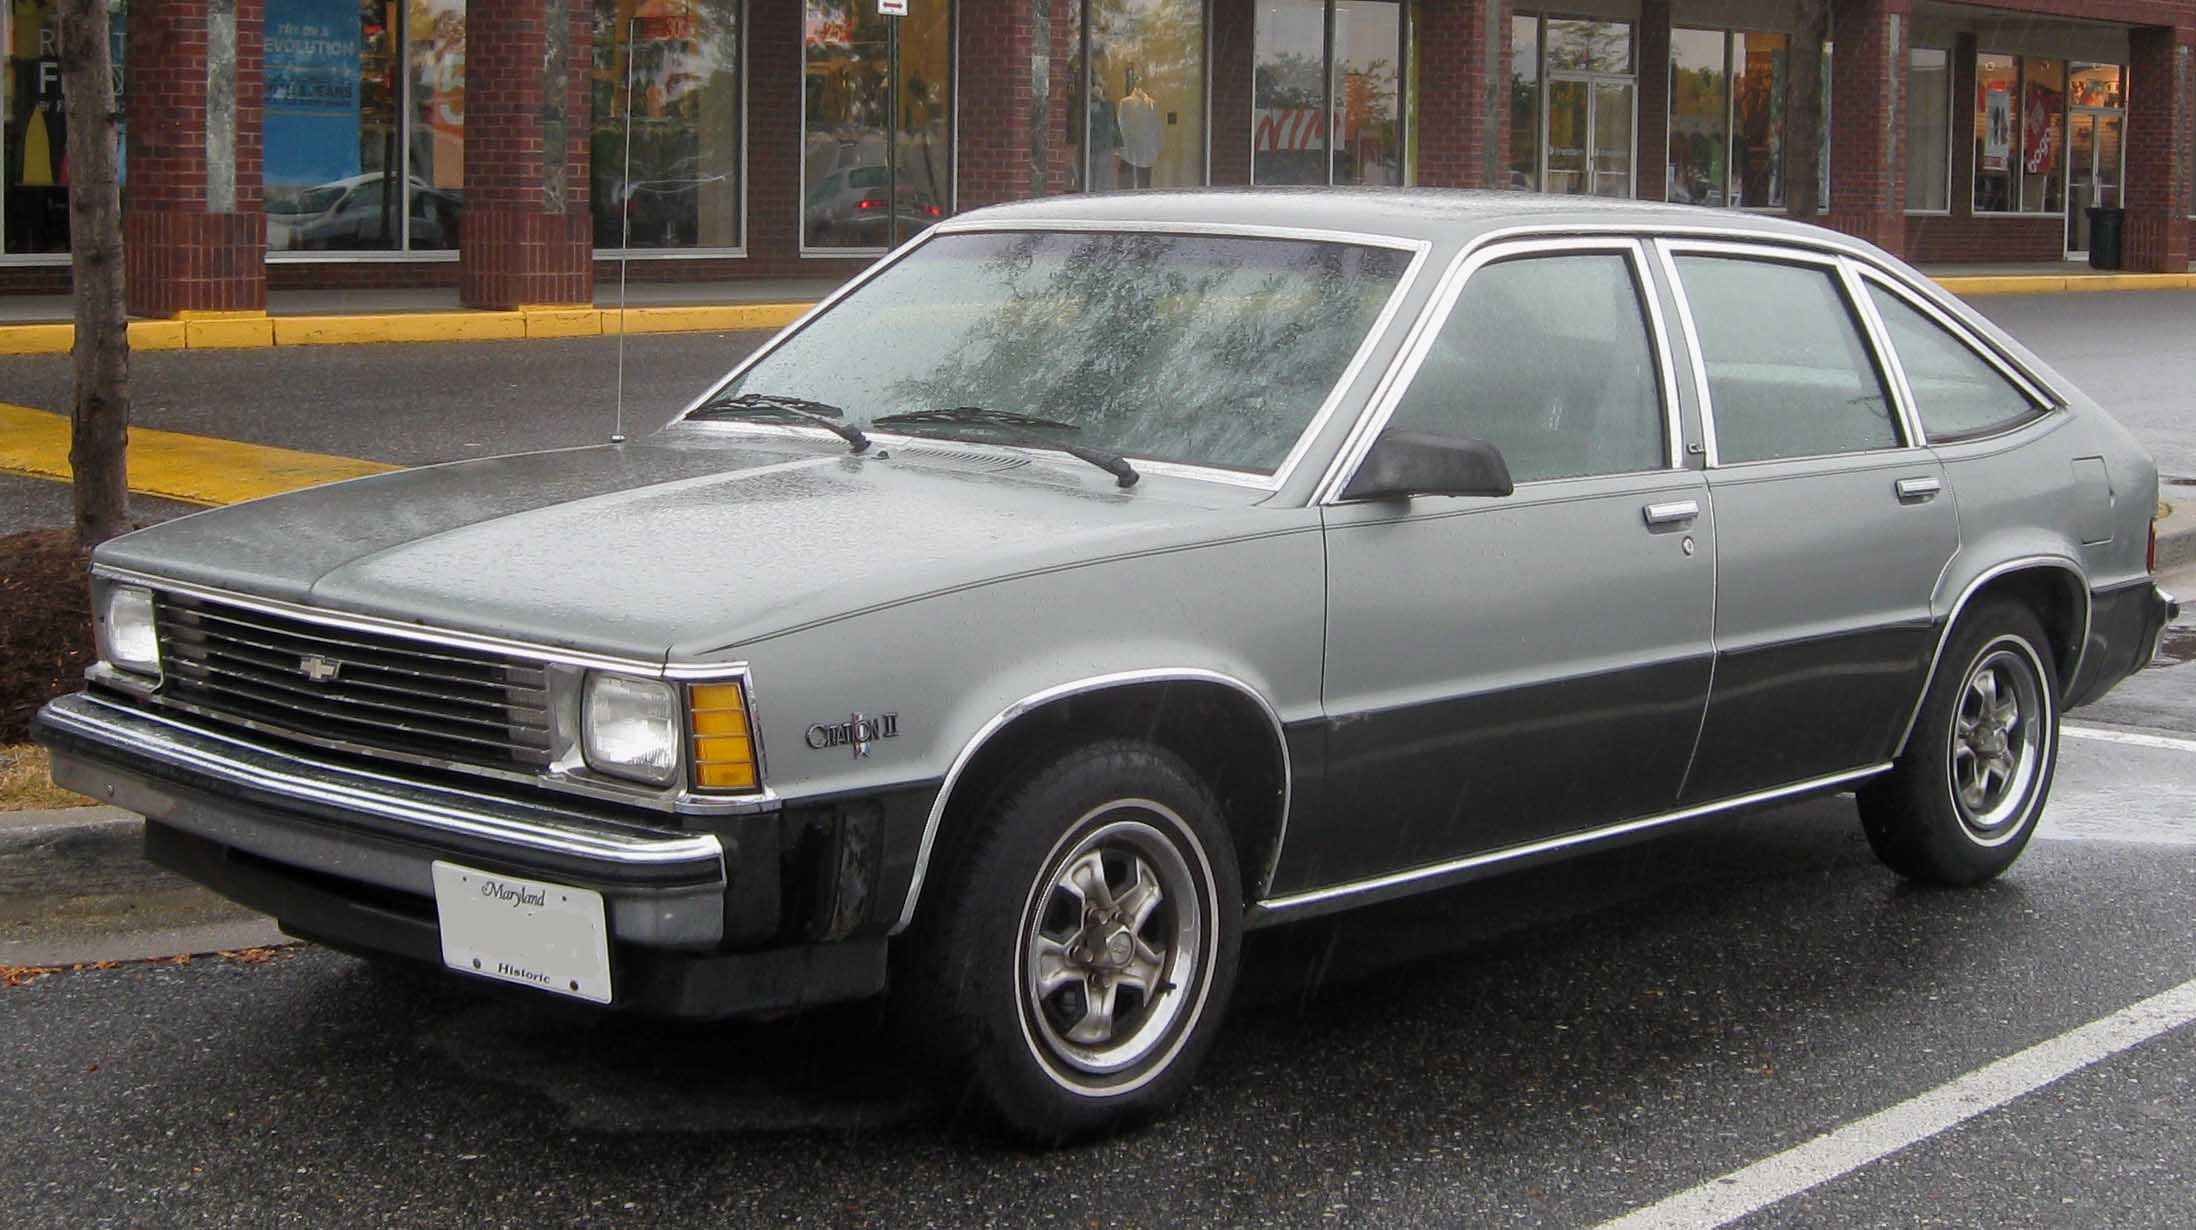 Chevrolet Citation 1980 foto - 4